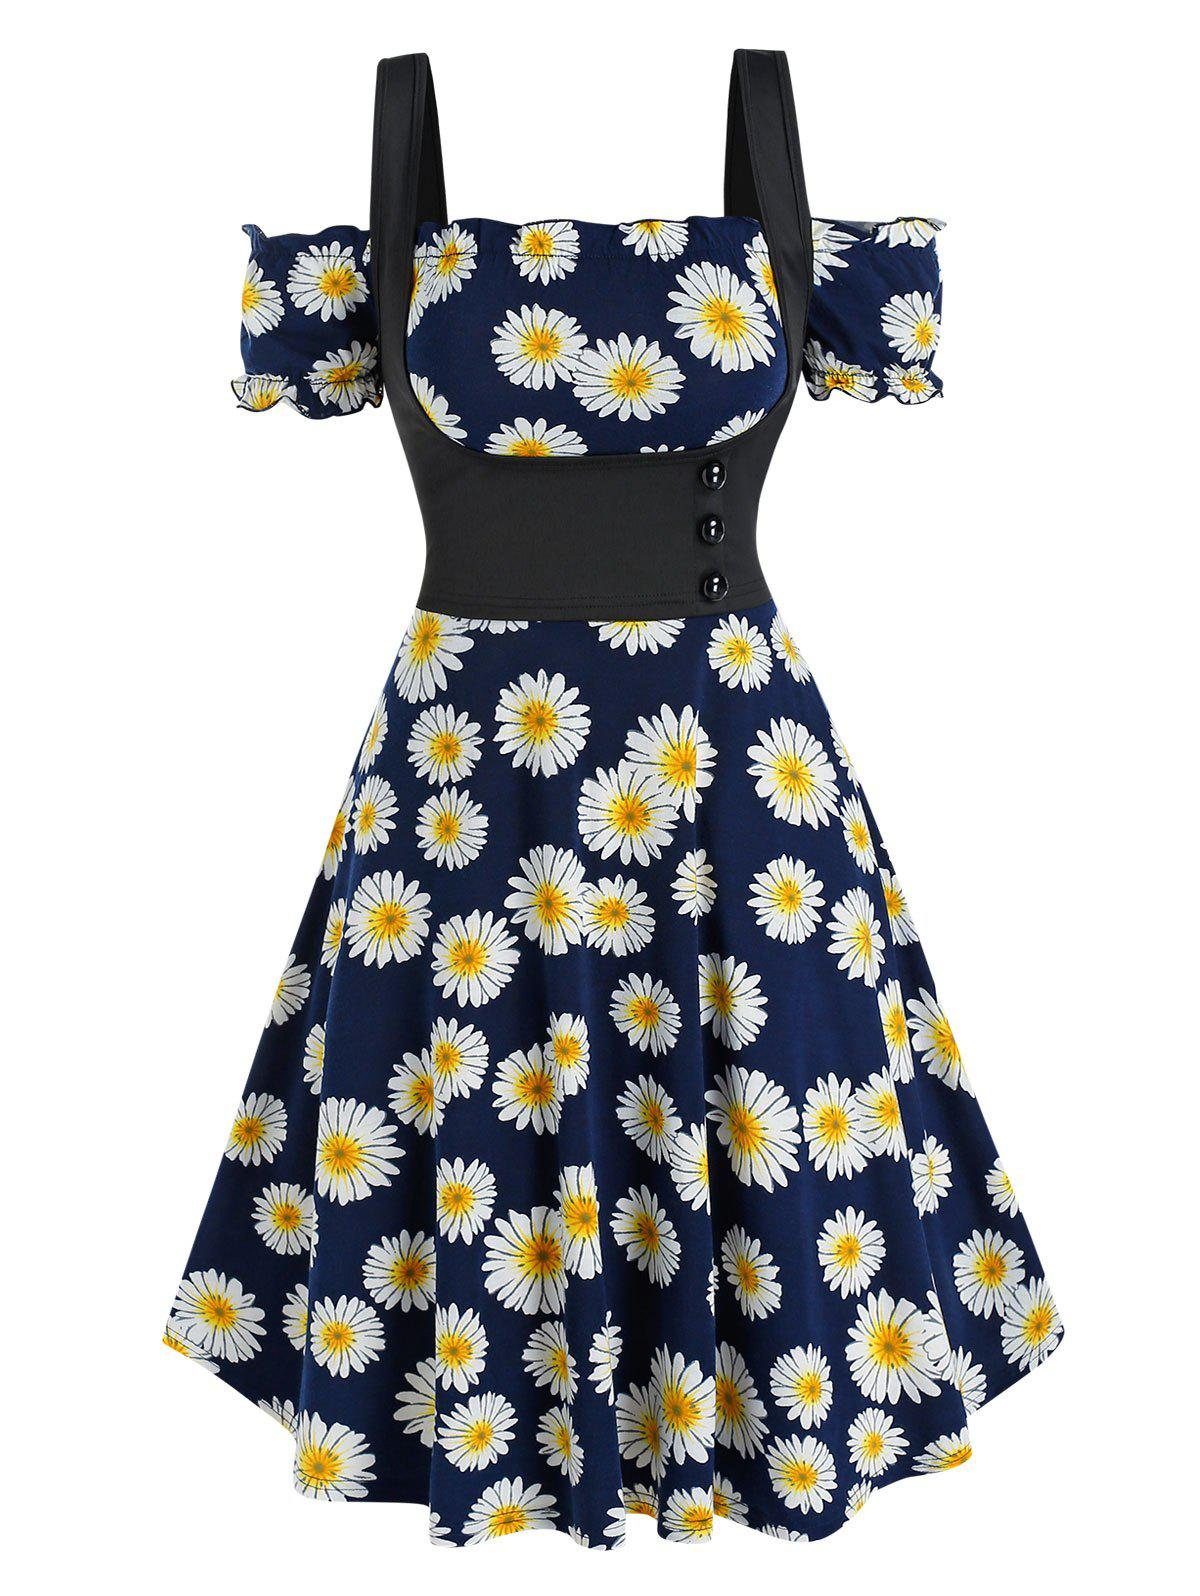 Sale Off The Shoulder Daisy Print Dress and Top Twinset